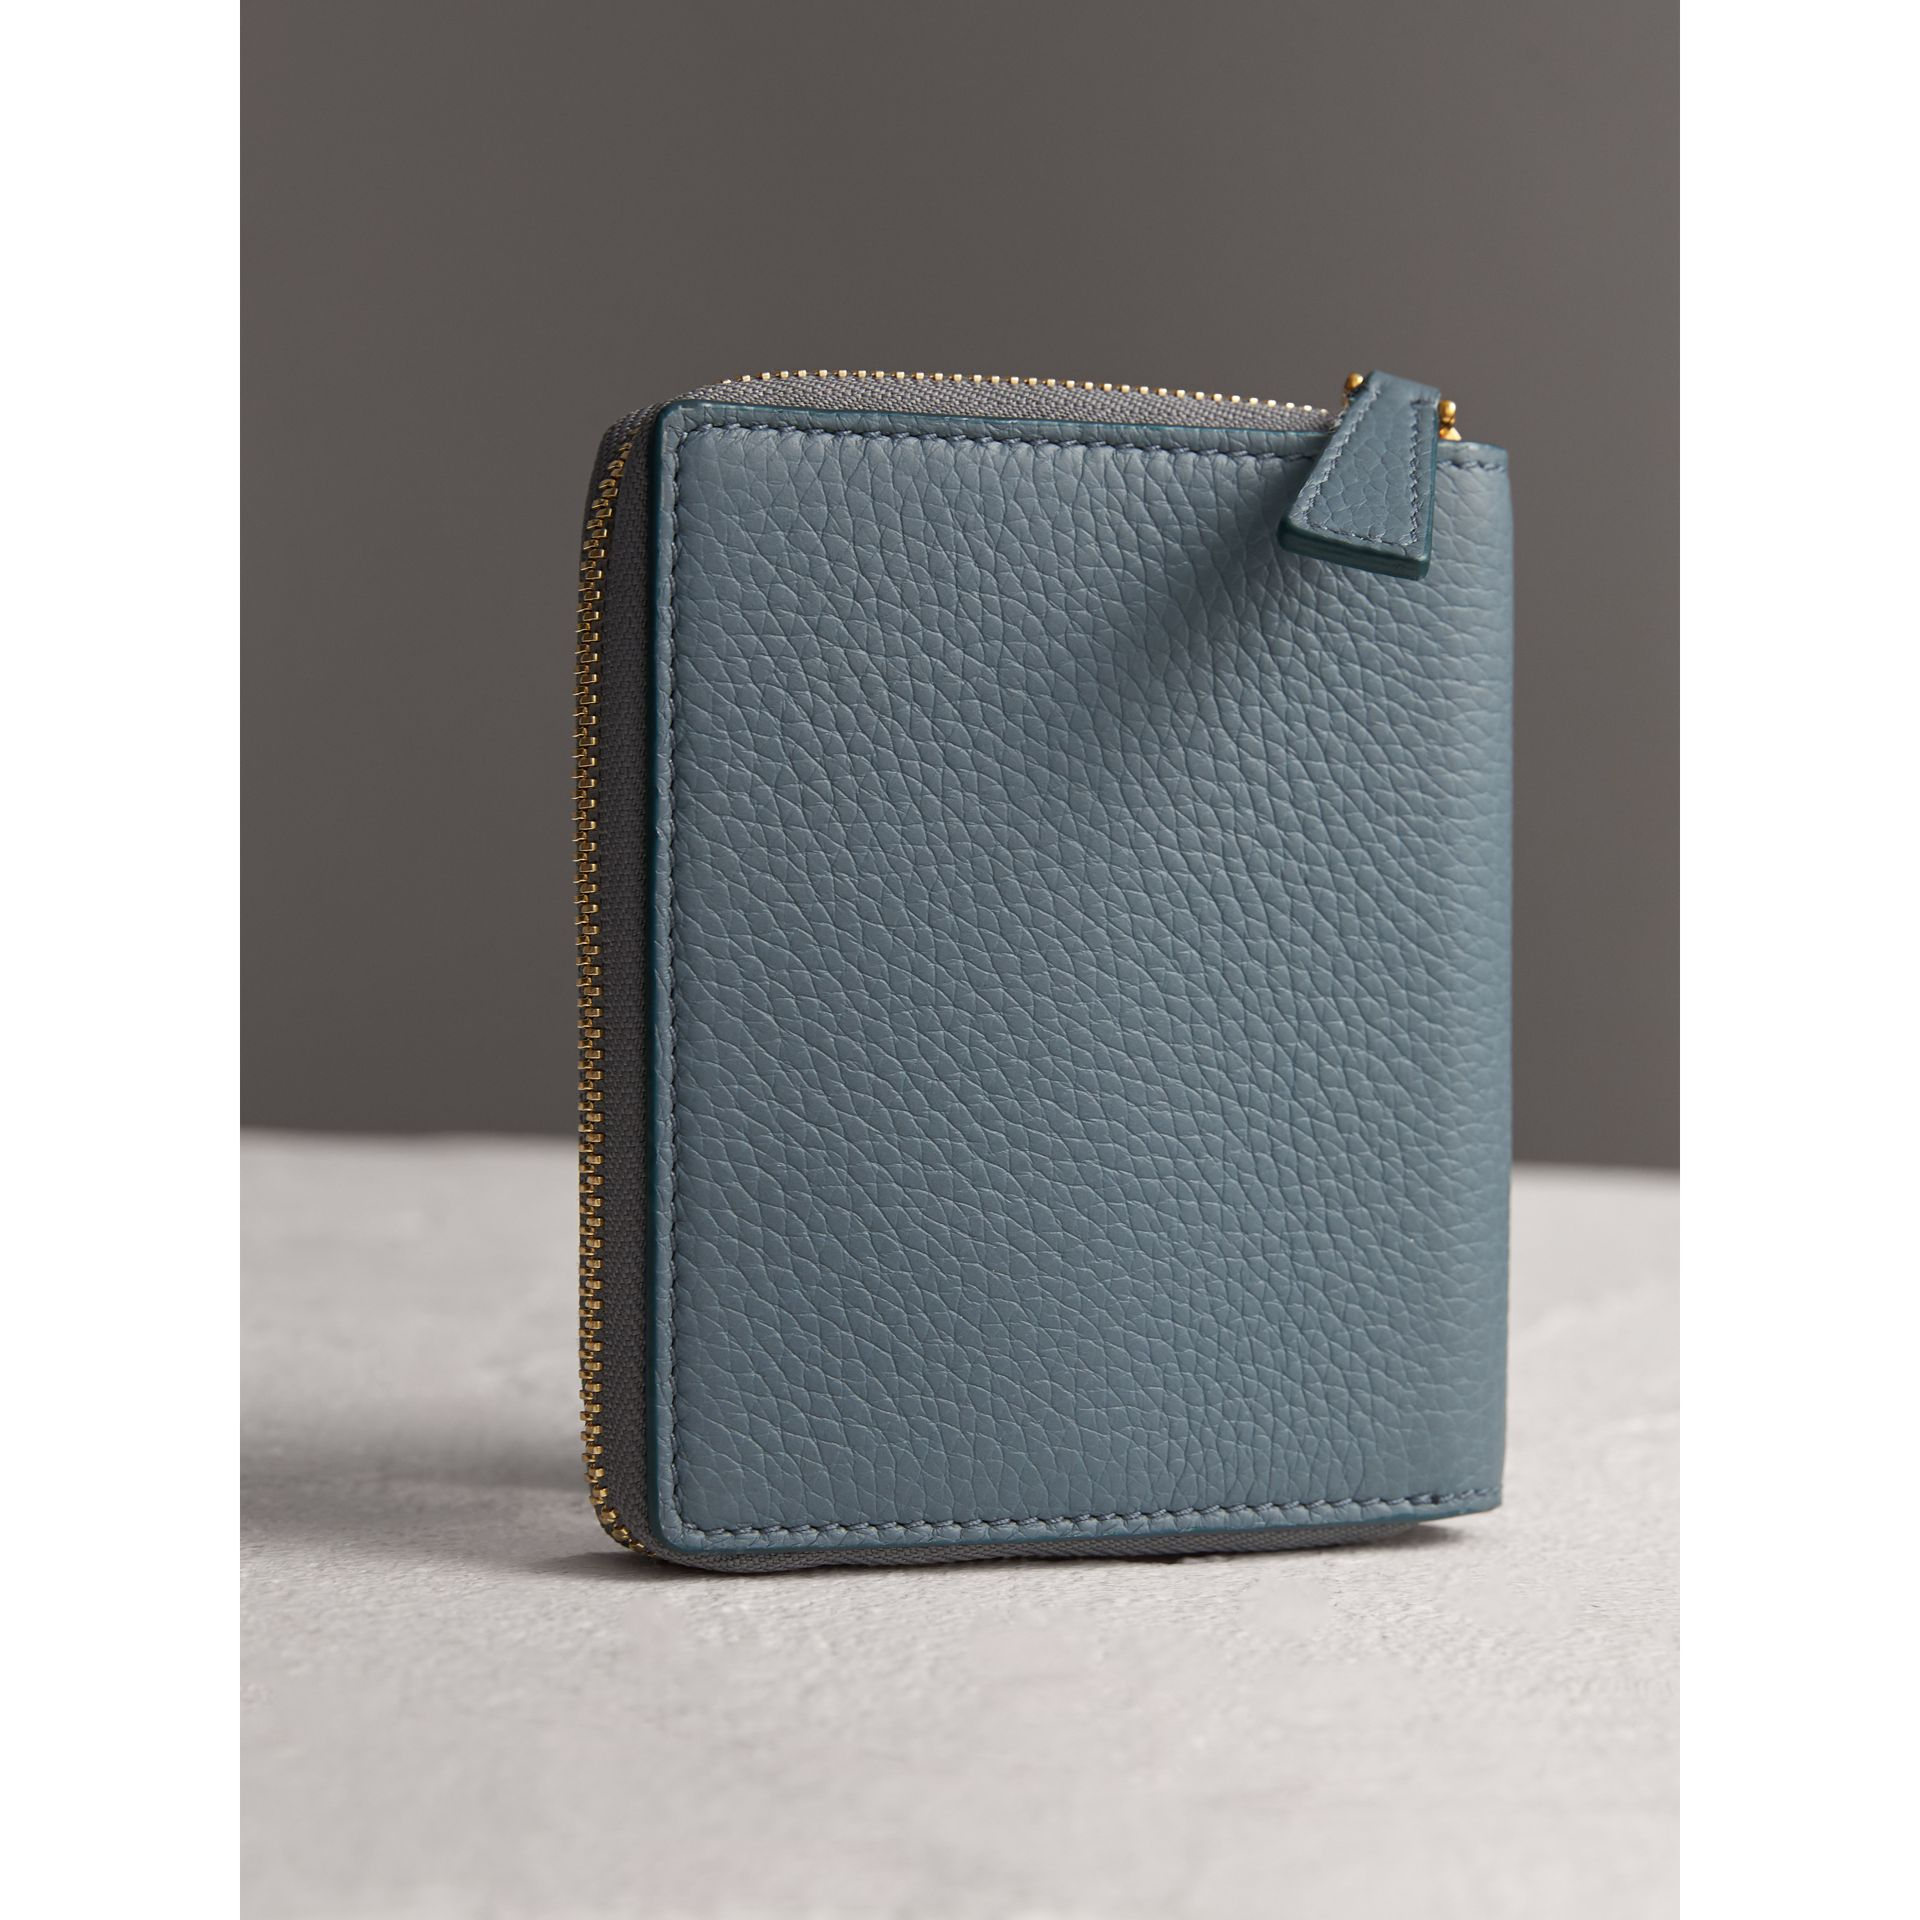 Embossed Grainy Leather Ziparound A6 Notebook Case in Dusty Teal Blue | Burberry United States - gallery image 2